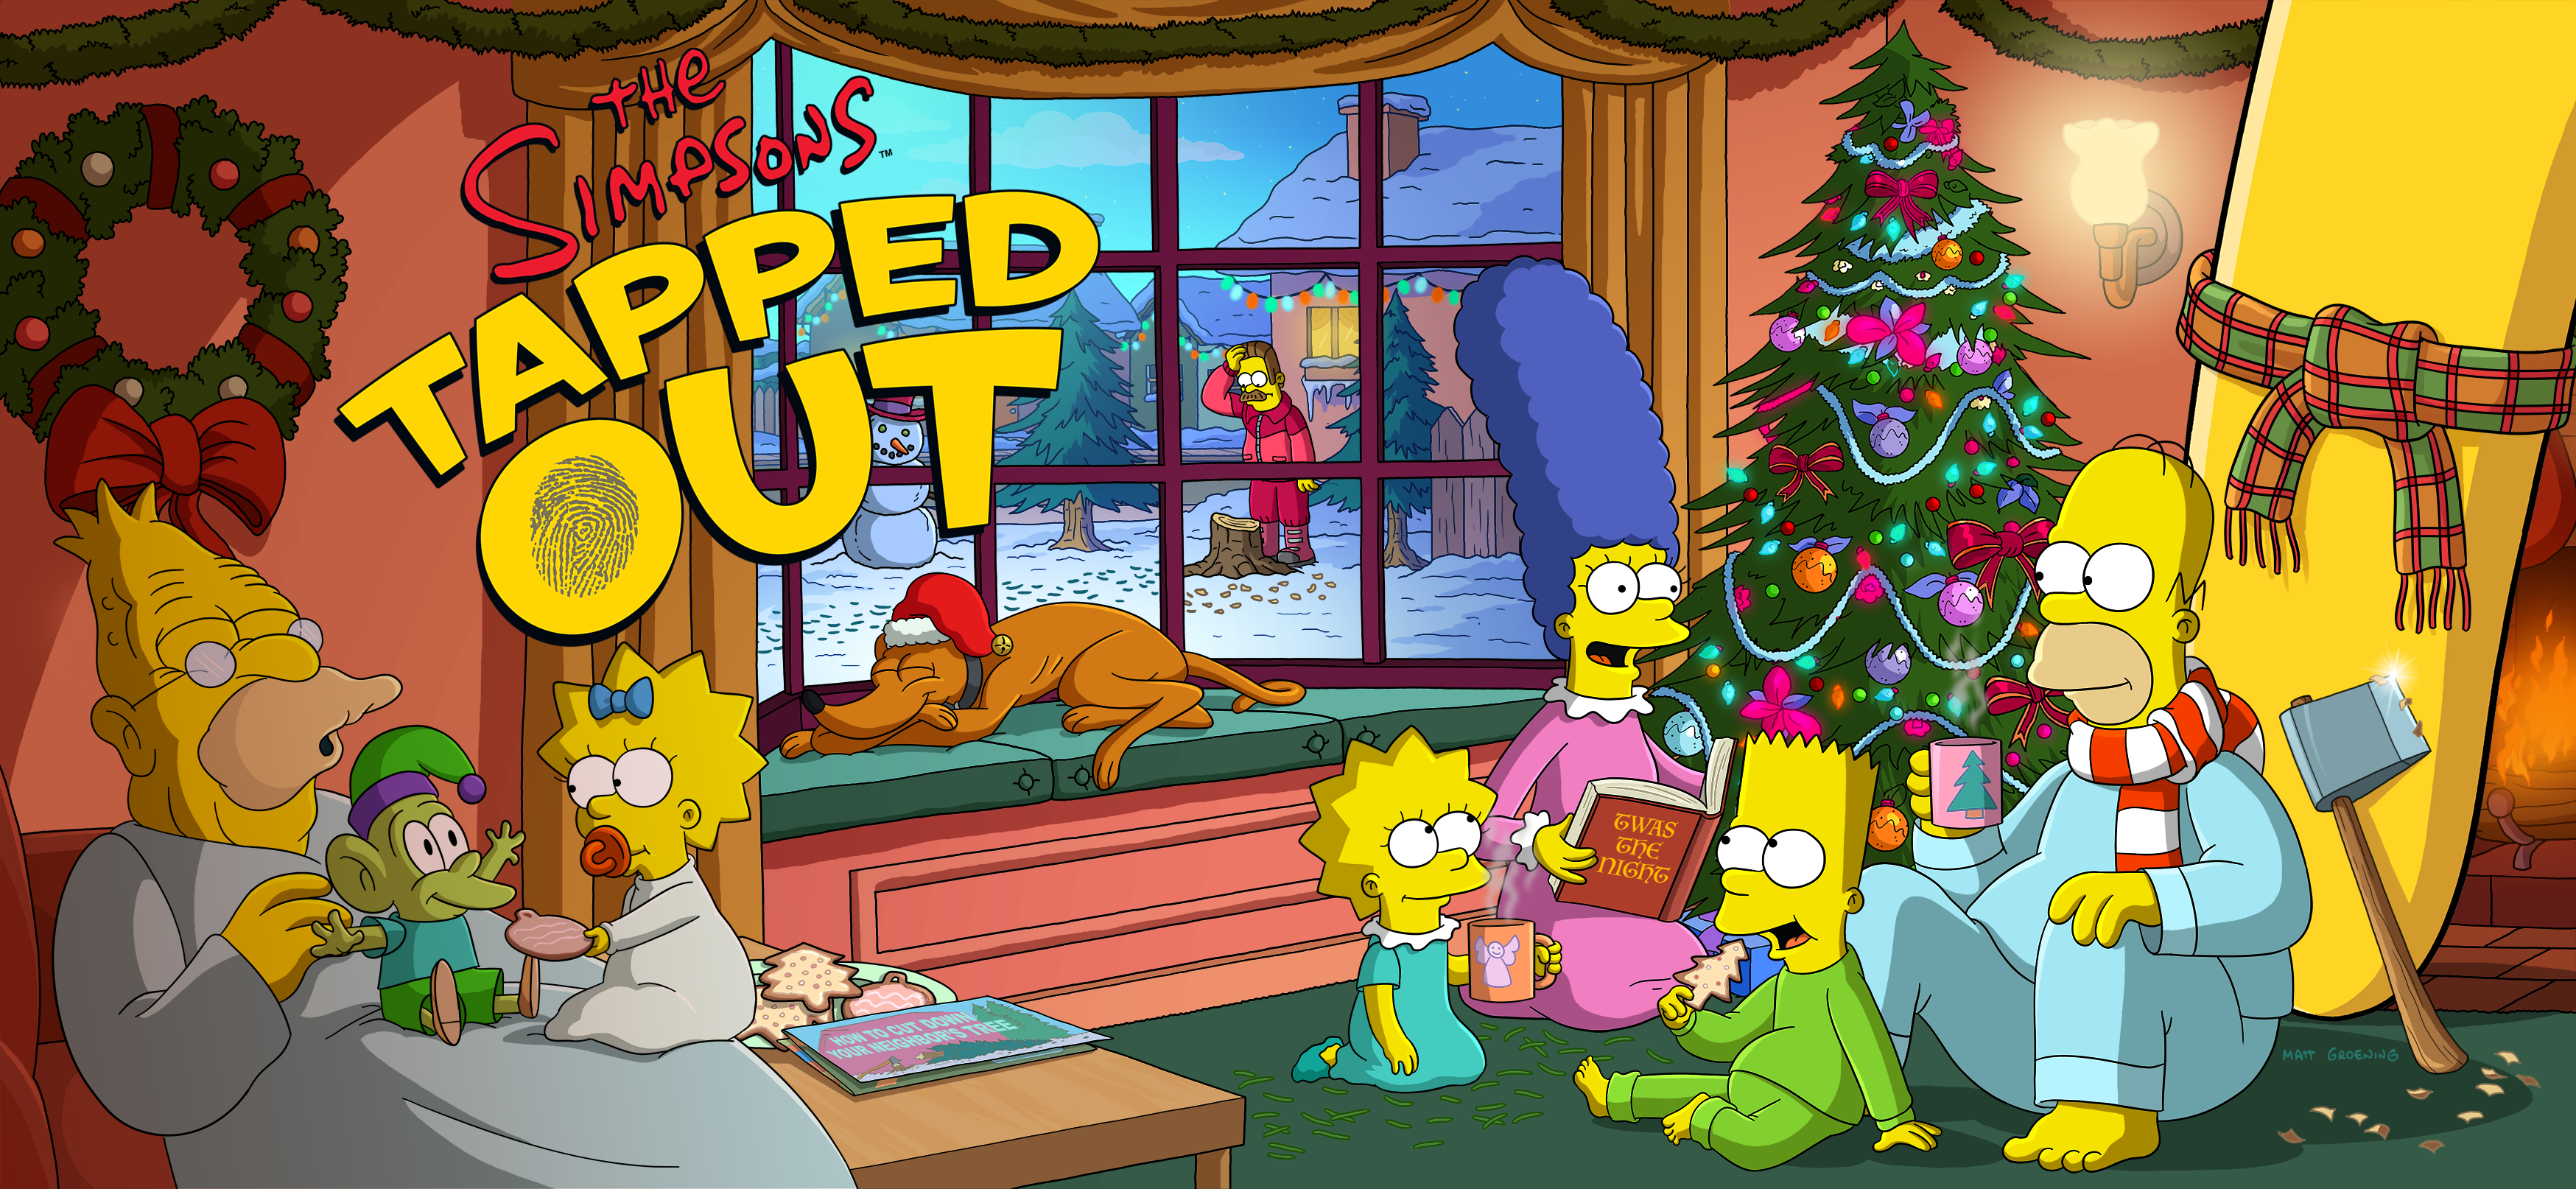 Tapped Out Walkthrough 2020 Halloween Tapped Out Simpsons Christmas 2020 Walkthroughs | Nwngvs